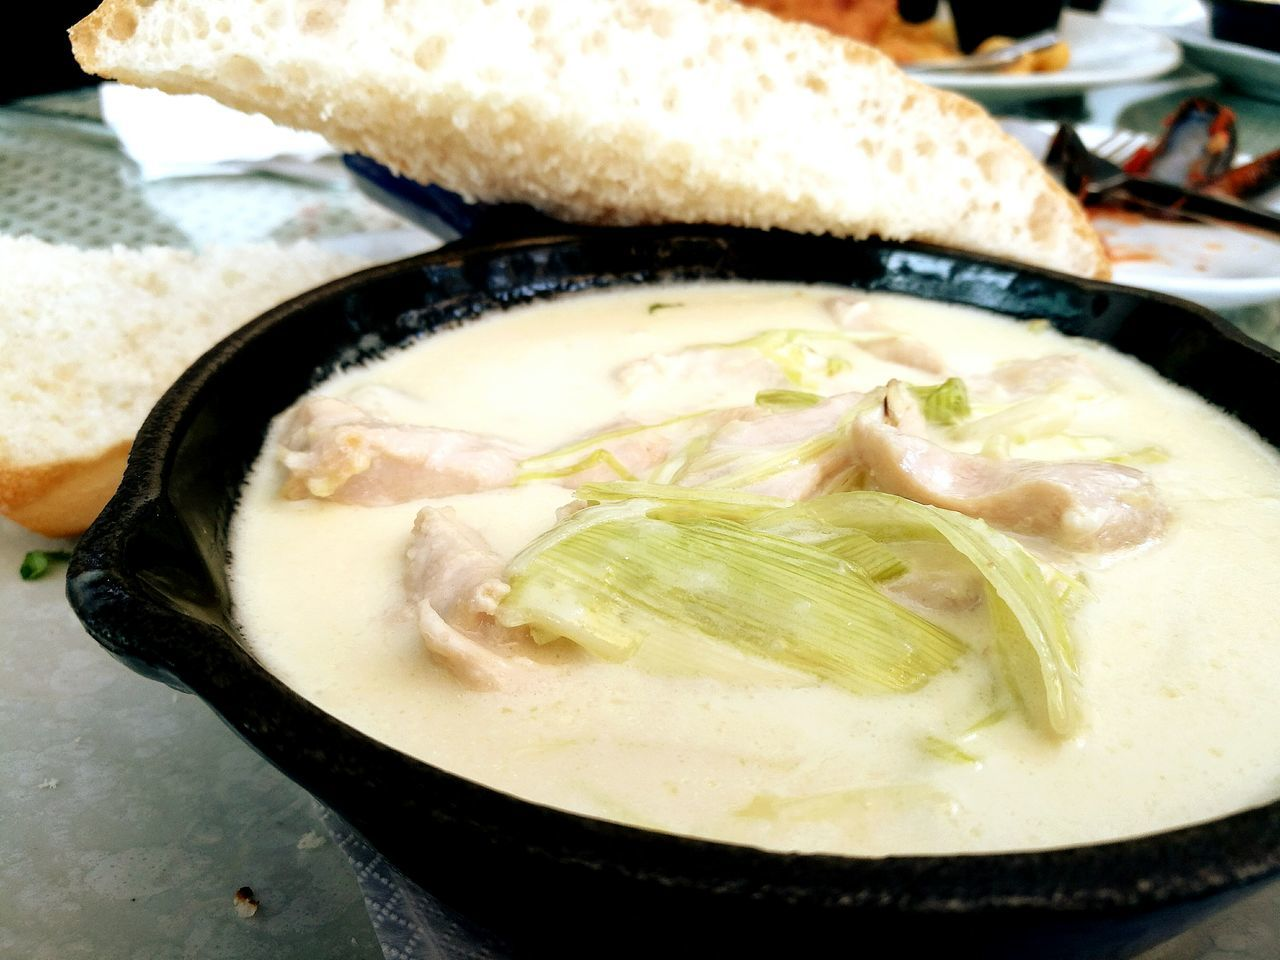 Chicken In A Pot Food And Drink Food Ready-to-eat Close-up Luncheon Lunchtime! Leica_camera Leicalens Huaweip9photos Comfort Food Food And Drink